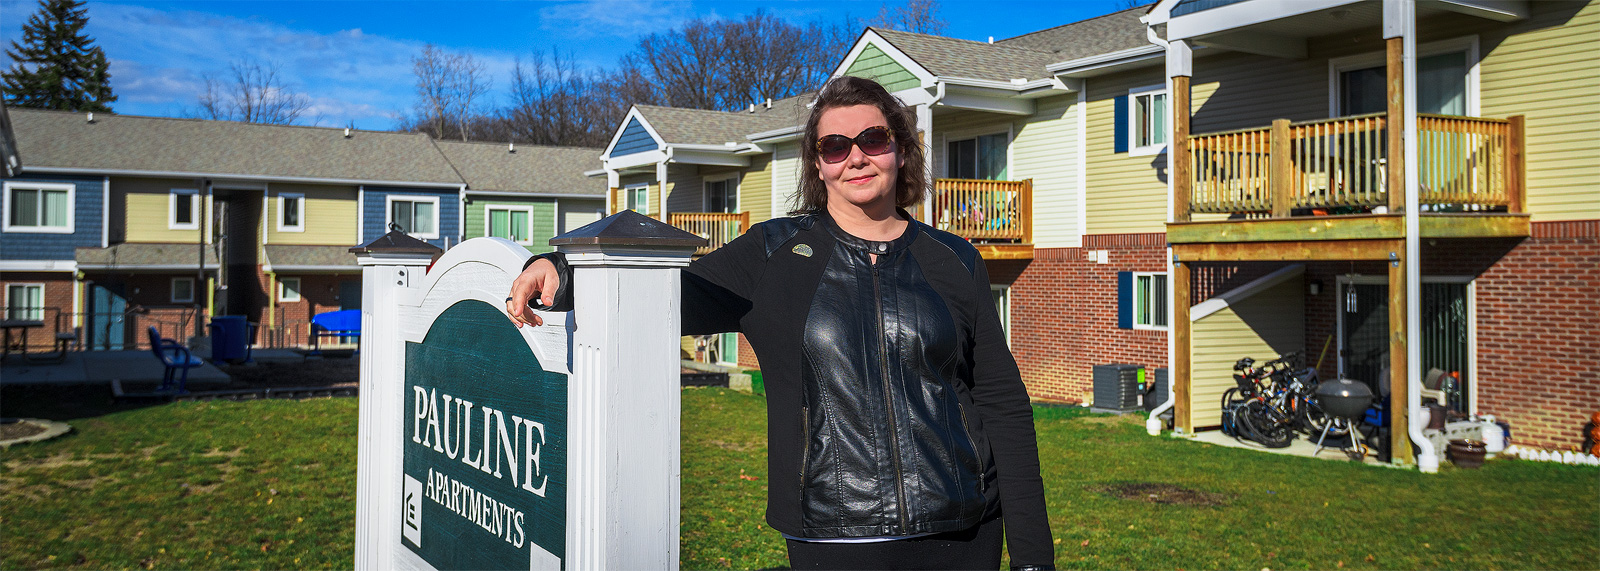 Jessica Letaw at Avalon Housing's Pauline Apartments